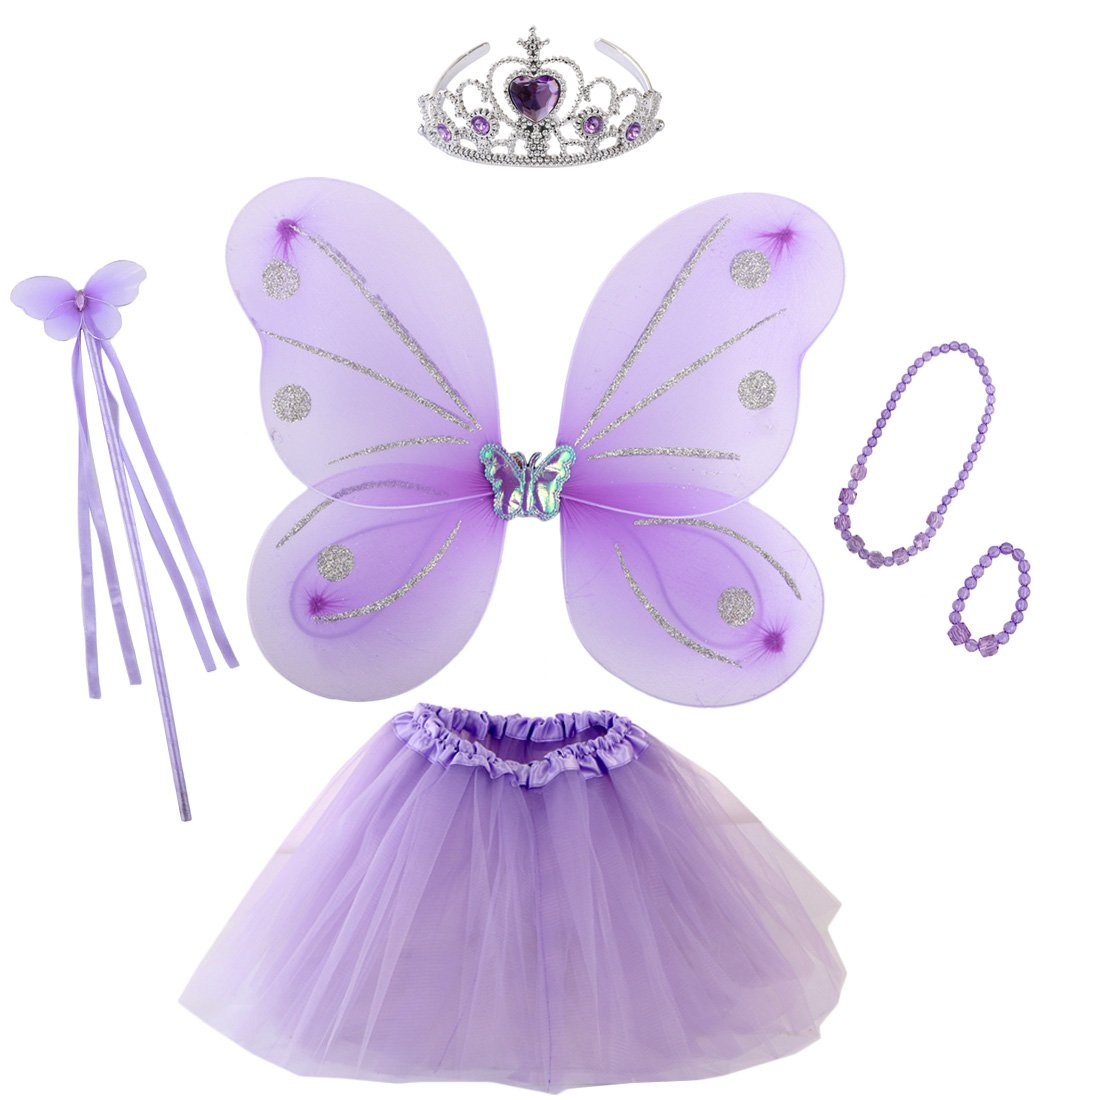 kilofly Princess Party Favor Jewelry Fairy Costume Dress Up Role Play Value Pack TRTAZ11A